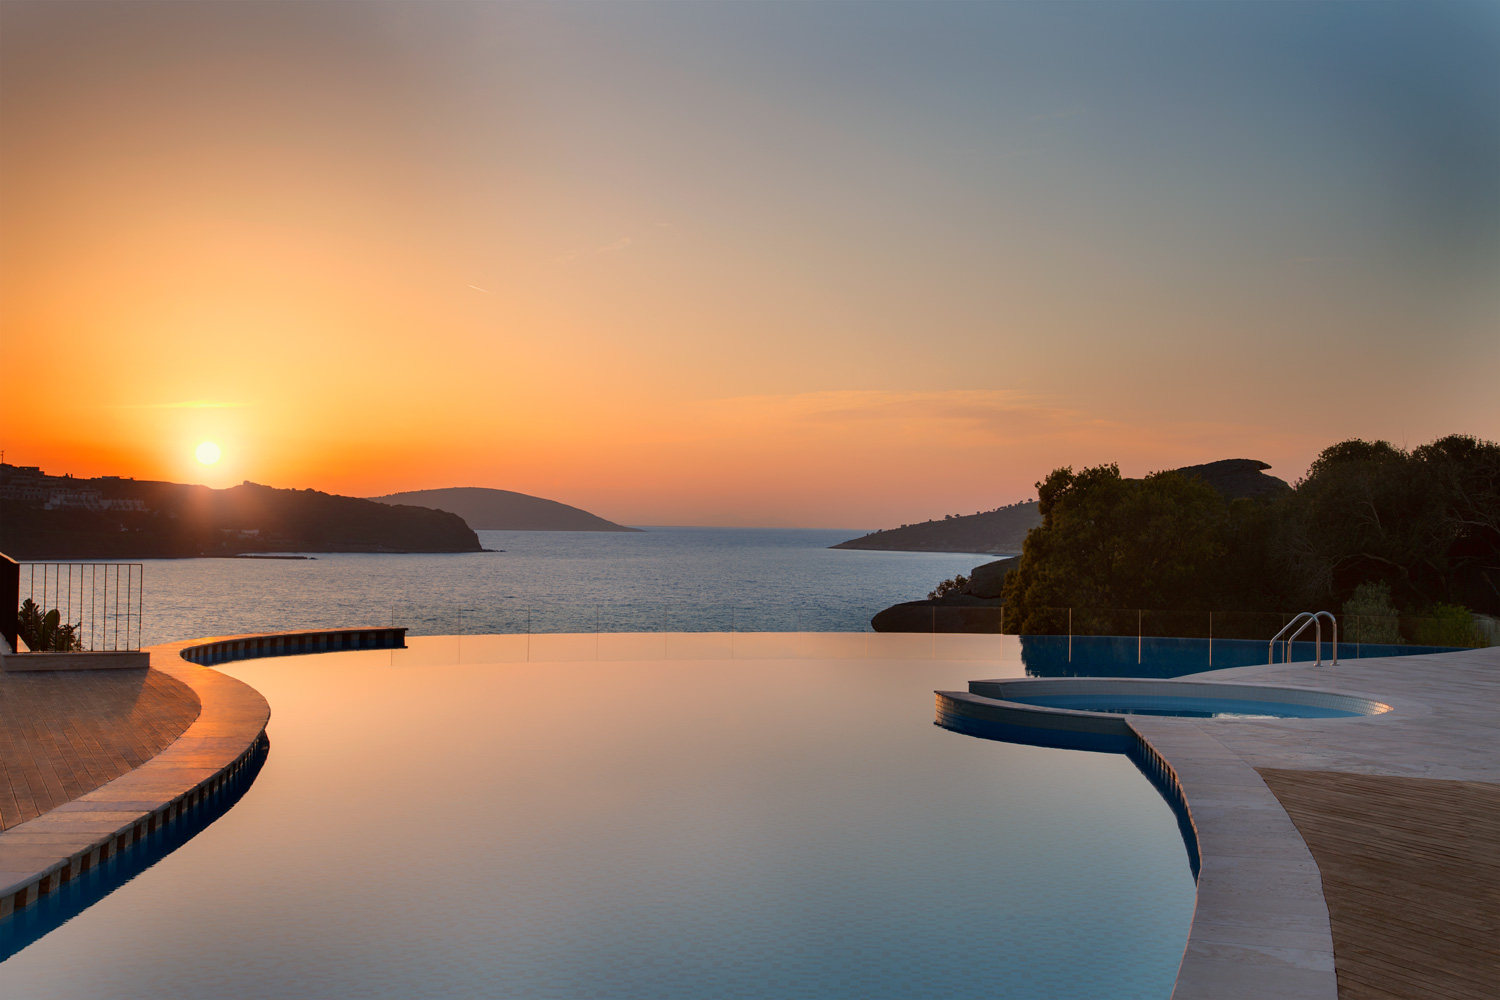 JW Marriott Hotels & Resorts, nuova apertura a Bodrum